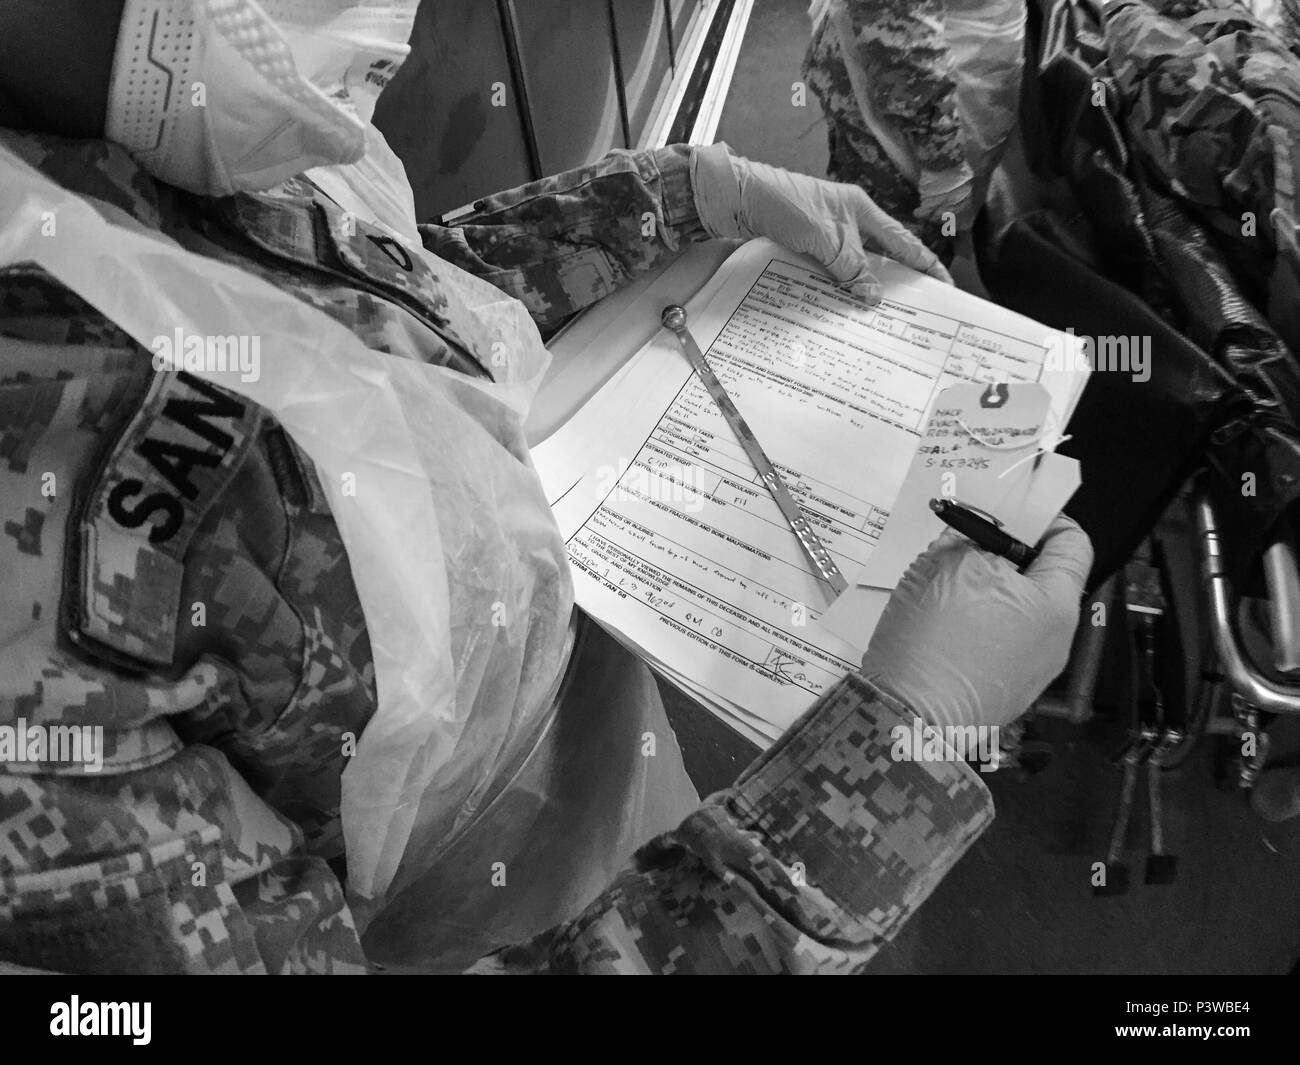 A soldier with the U.S. Army Reserve's 962nd Quartermaster Company (Mortuary Affairs) based in Guam, prepares the final paperwork, tags, and identification lock, that will be placed on a simulated human remains pouch, during Mortuary Affairs Exercise 16-02, July 22, at Fort Pickett, Va. MAX 16-02 included all six U.S. Army Reserve Mortuary Affairs units performing search and recovery missions and operating Mortuary Affairs Collection Points and a Theater Mortuary Evacuation Point. The units were evaluated by active-duty mortuary affairs personnel from nearby Fort Lee, Va. (U.S. Army photo by T - Stock Image